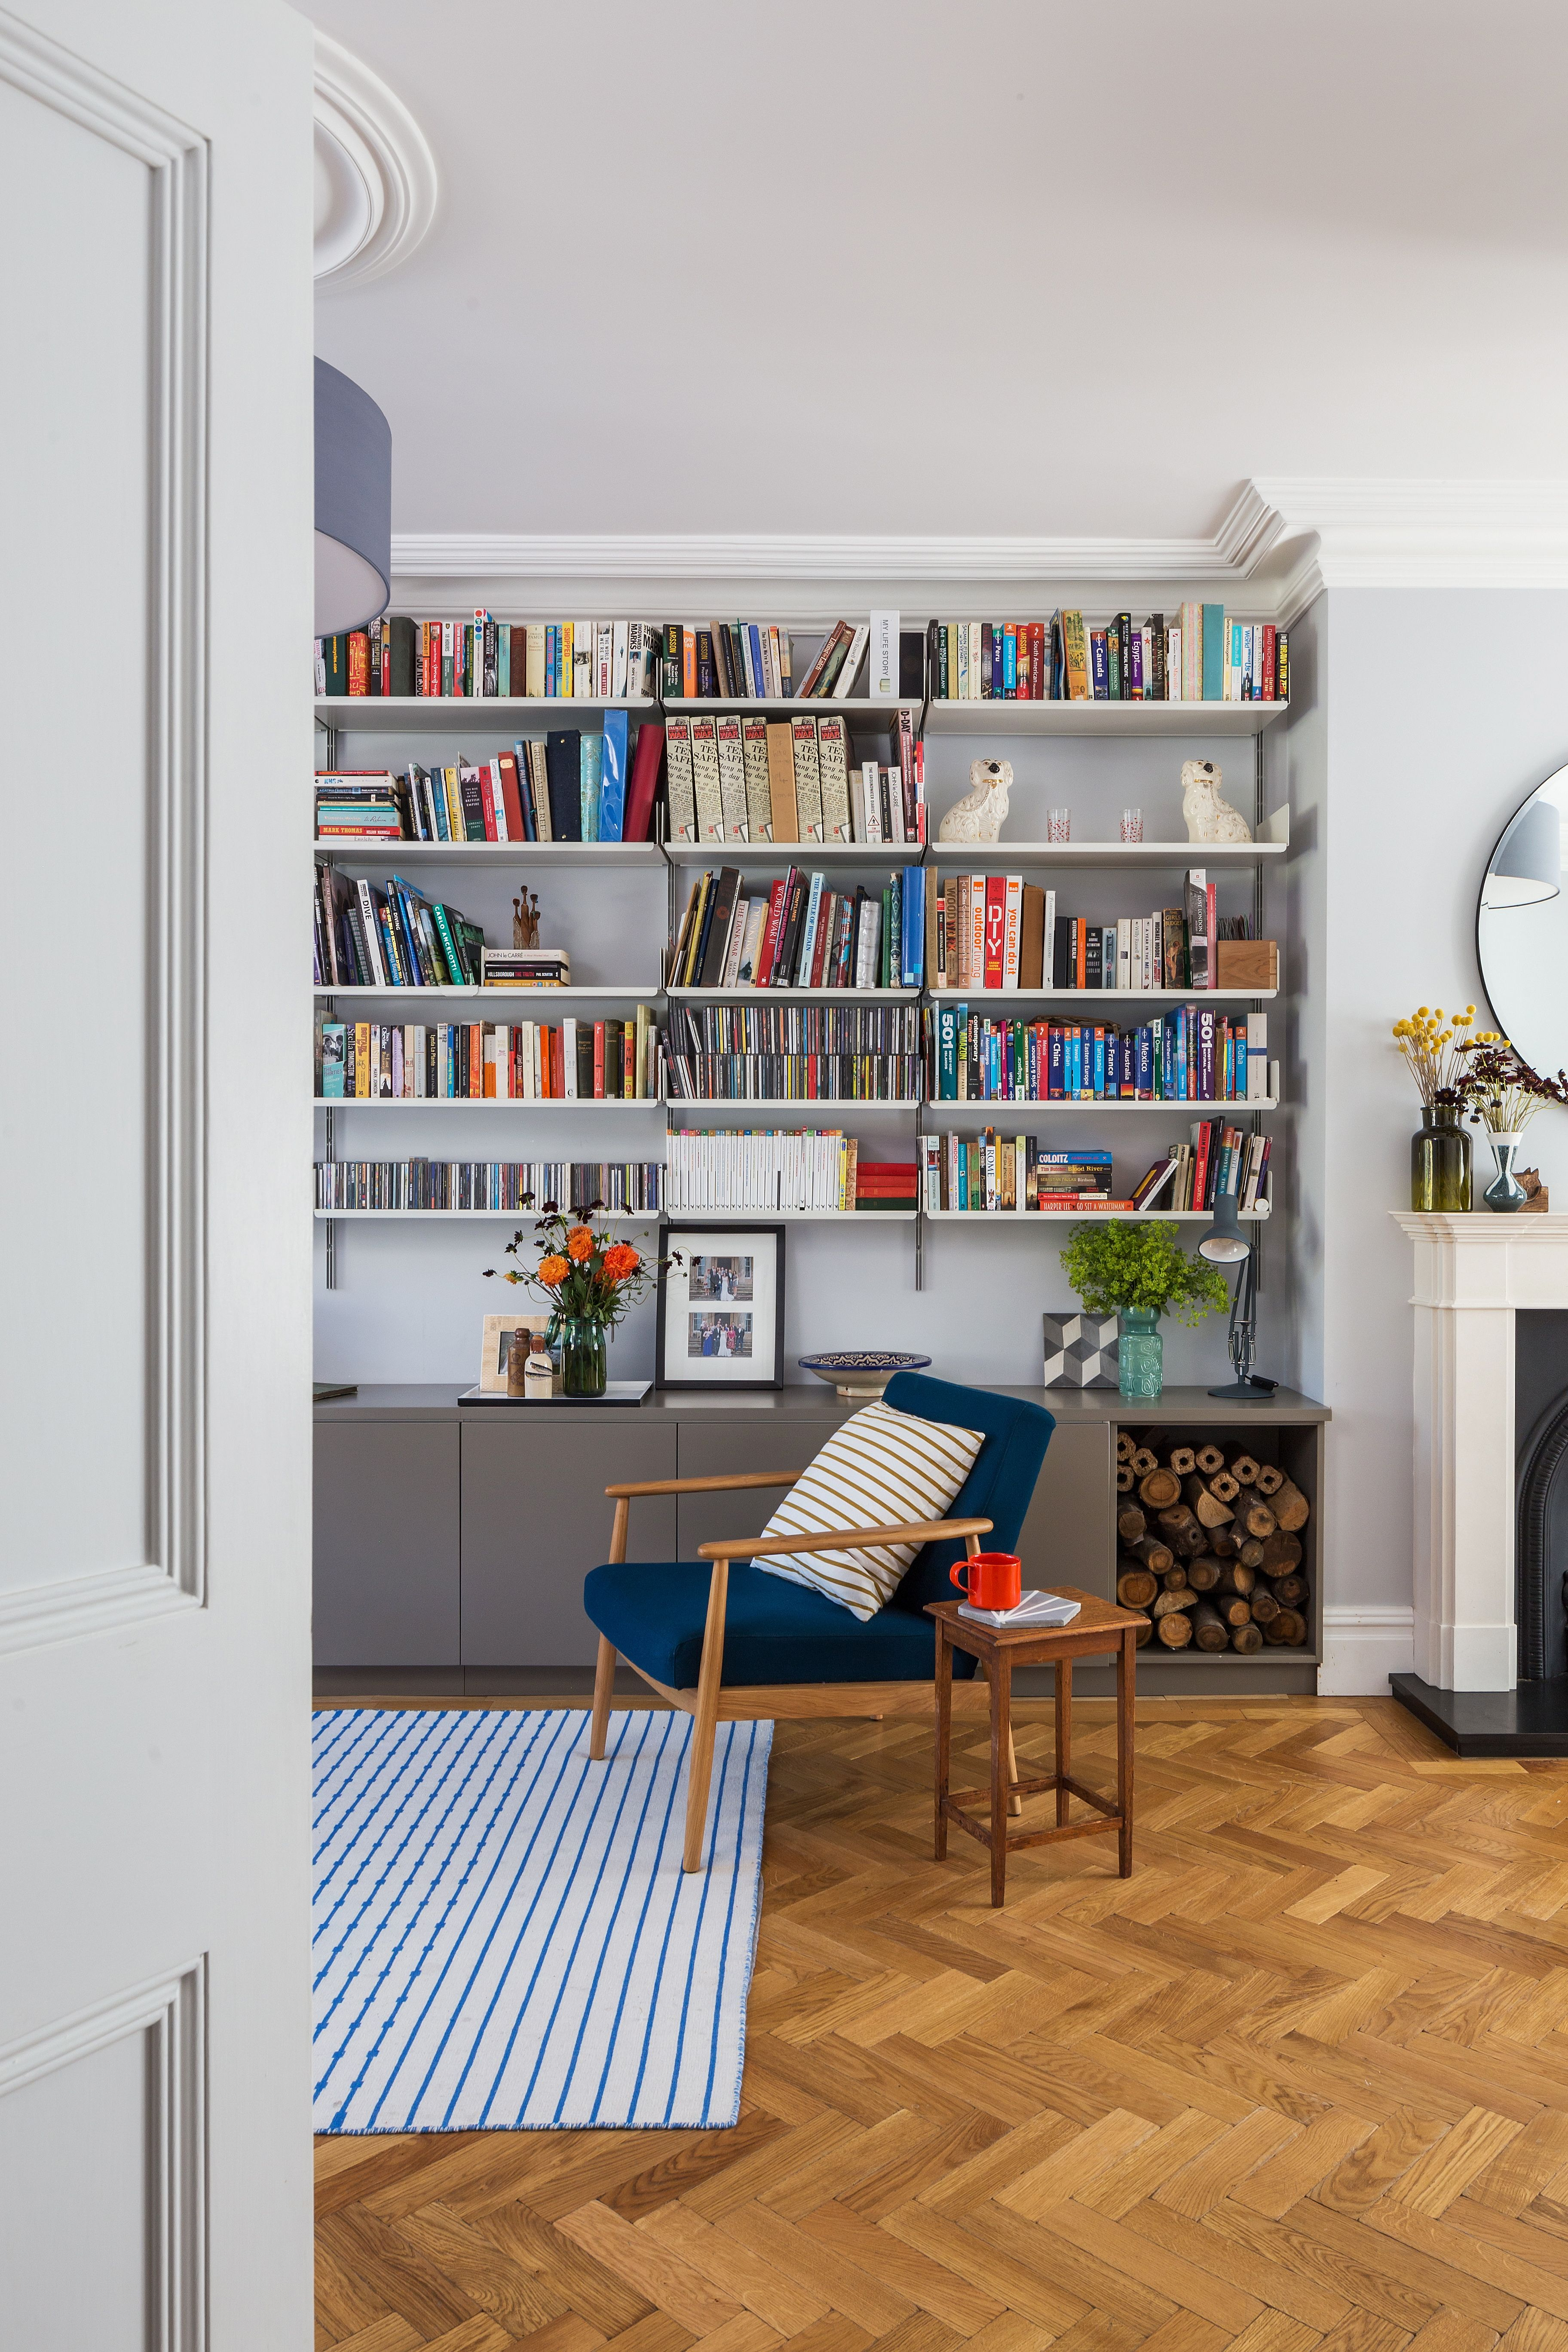 Interior design by Imperfect Interiors at this lovely Double Fronted Victorian house in East Dulwich London Oak parquet flooring mid century chairs and open shelving in the open plan living room graphy Ignas Jermosenka